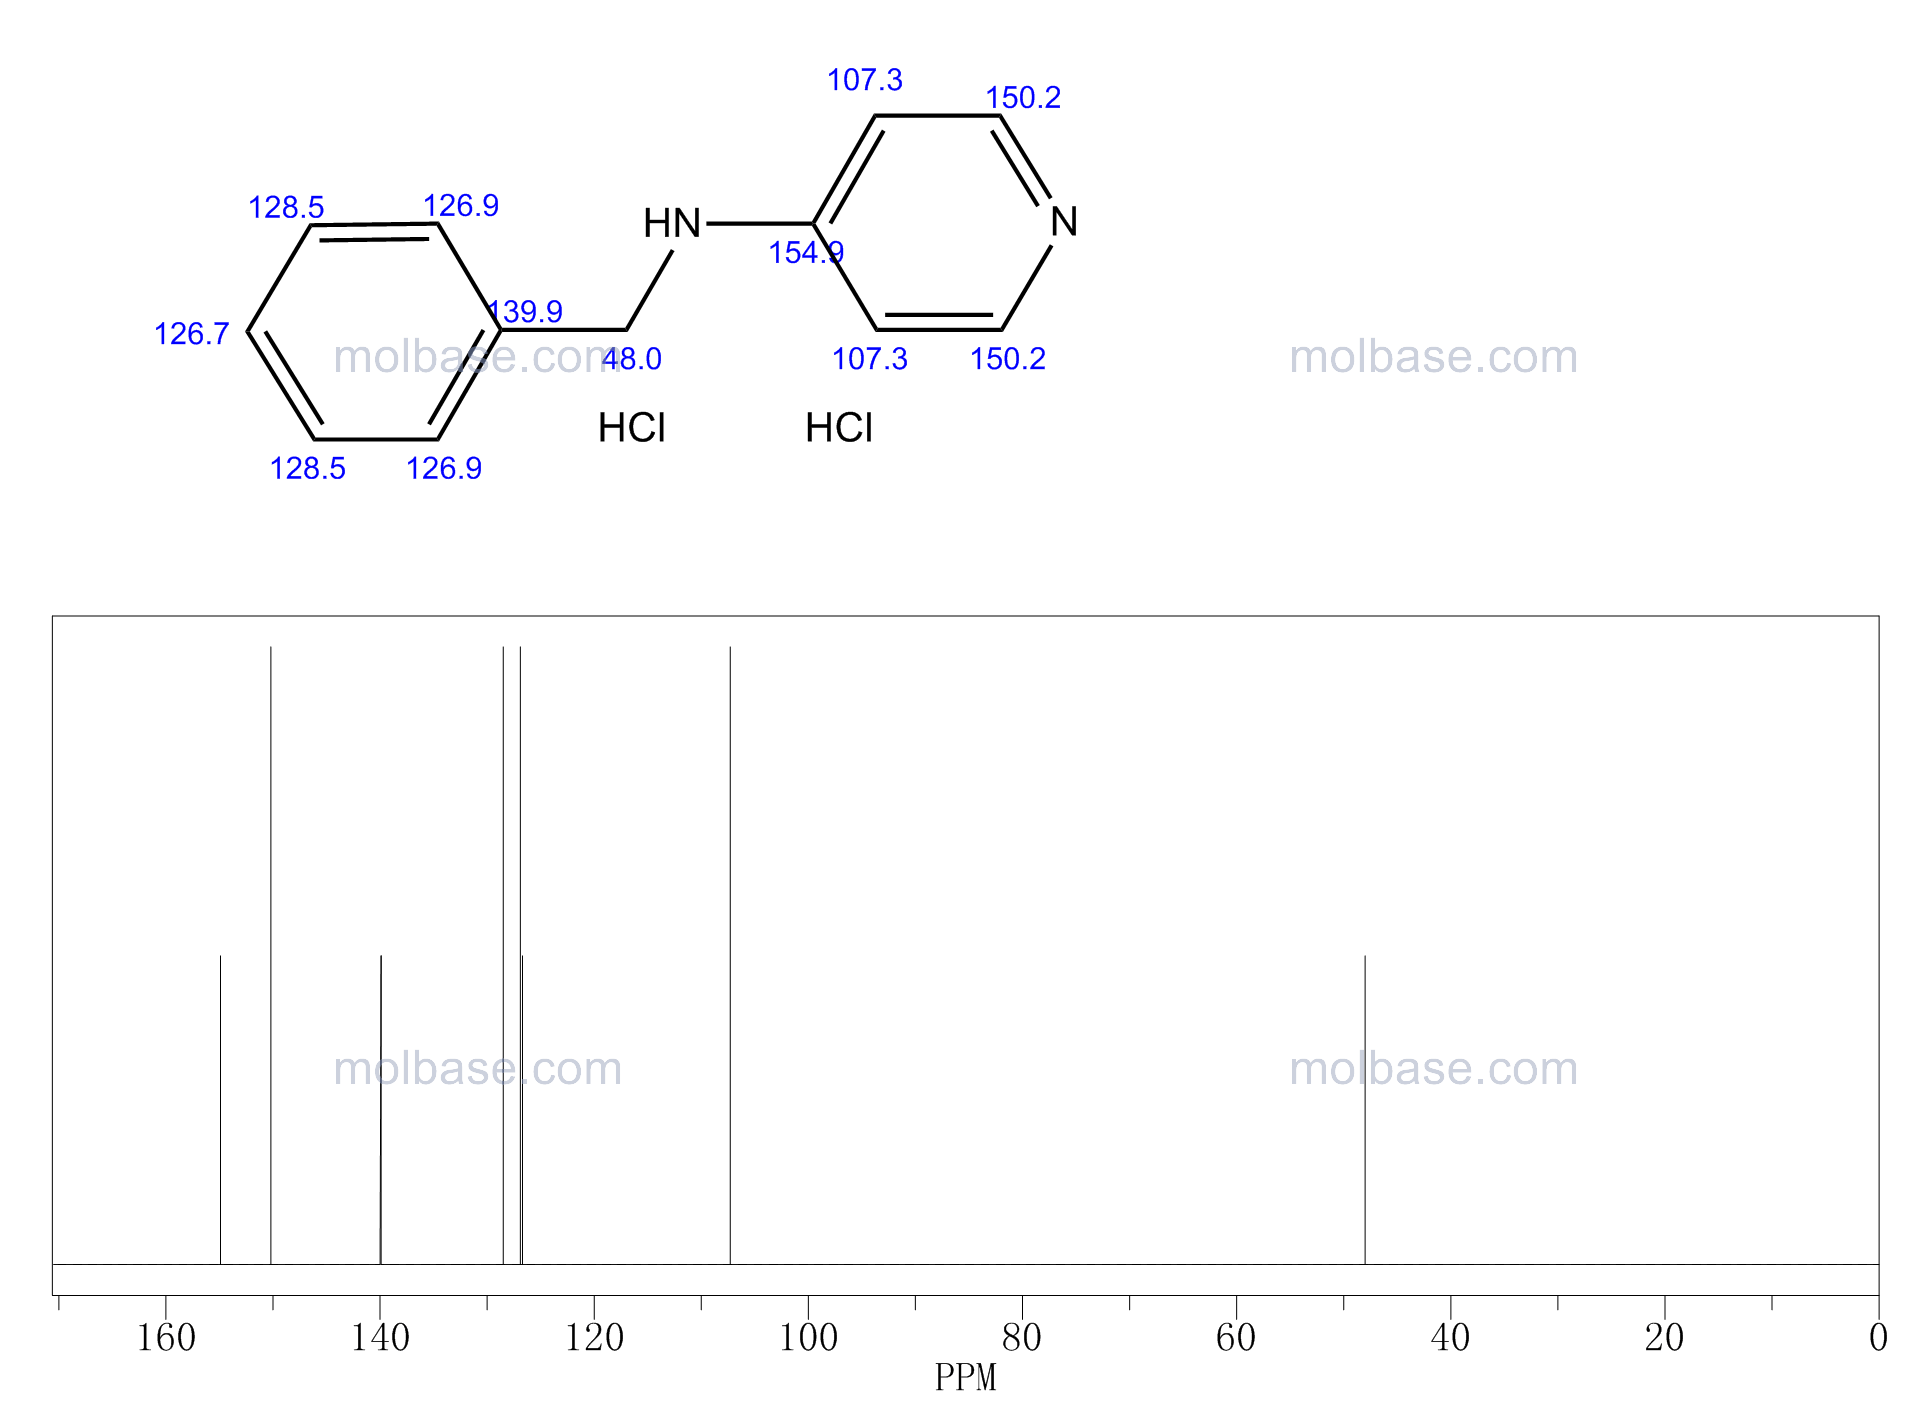 N-benzylpyridin-4-amine,dihydrochloride NMR spectra analysis, Chemical CAS NO. 289905-40-4 NMR spectral analysis, N-benzylpyridin-4-amine,dihydrochloride C-NMR spectrum